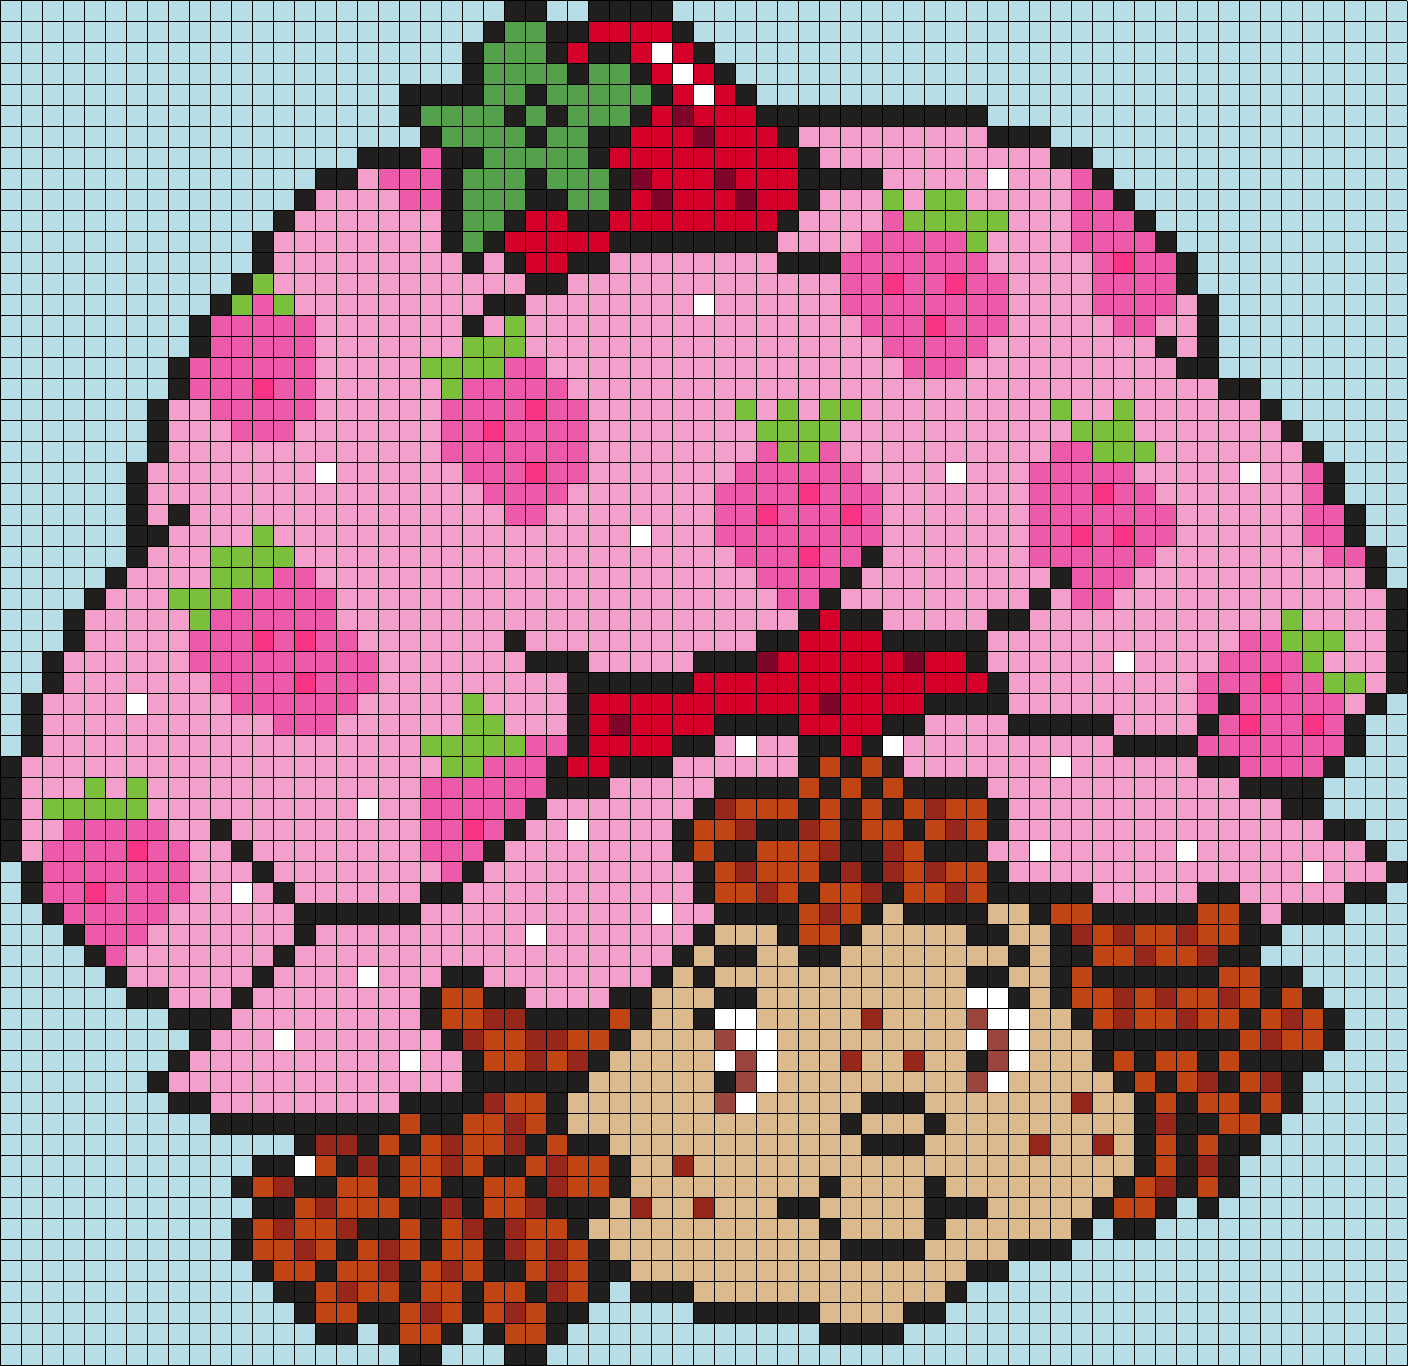 Strawberry Shortcake (square)